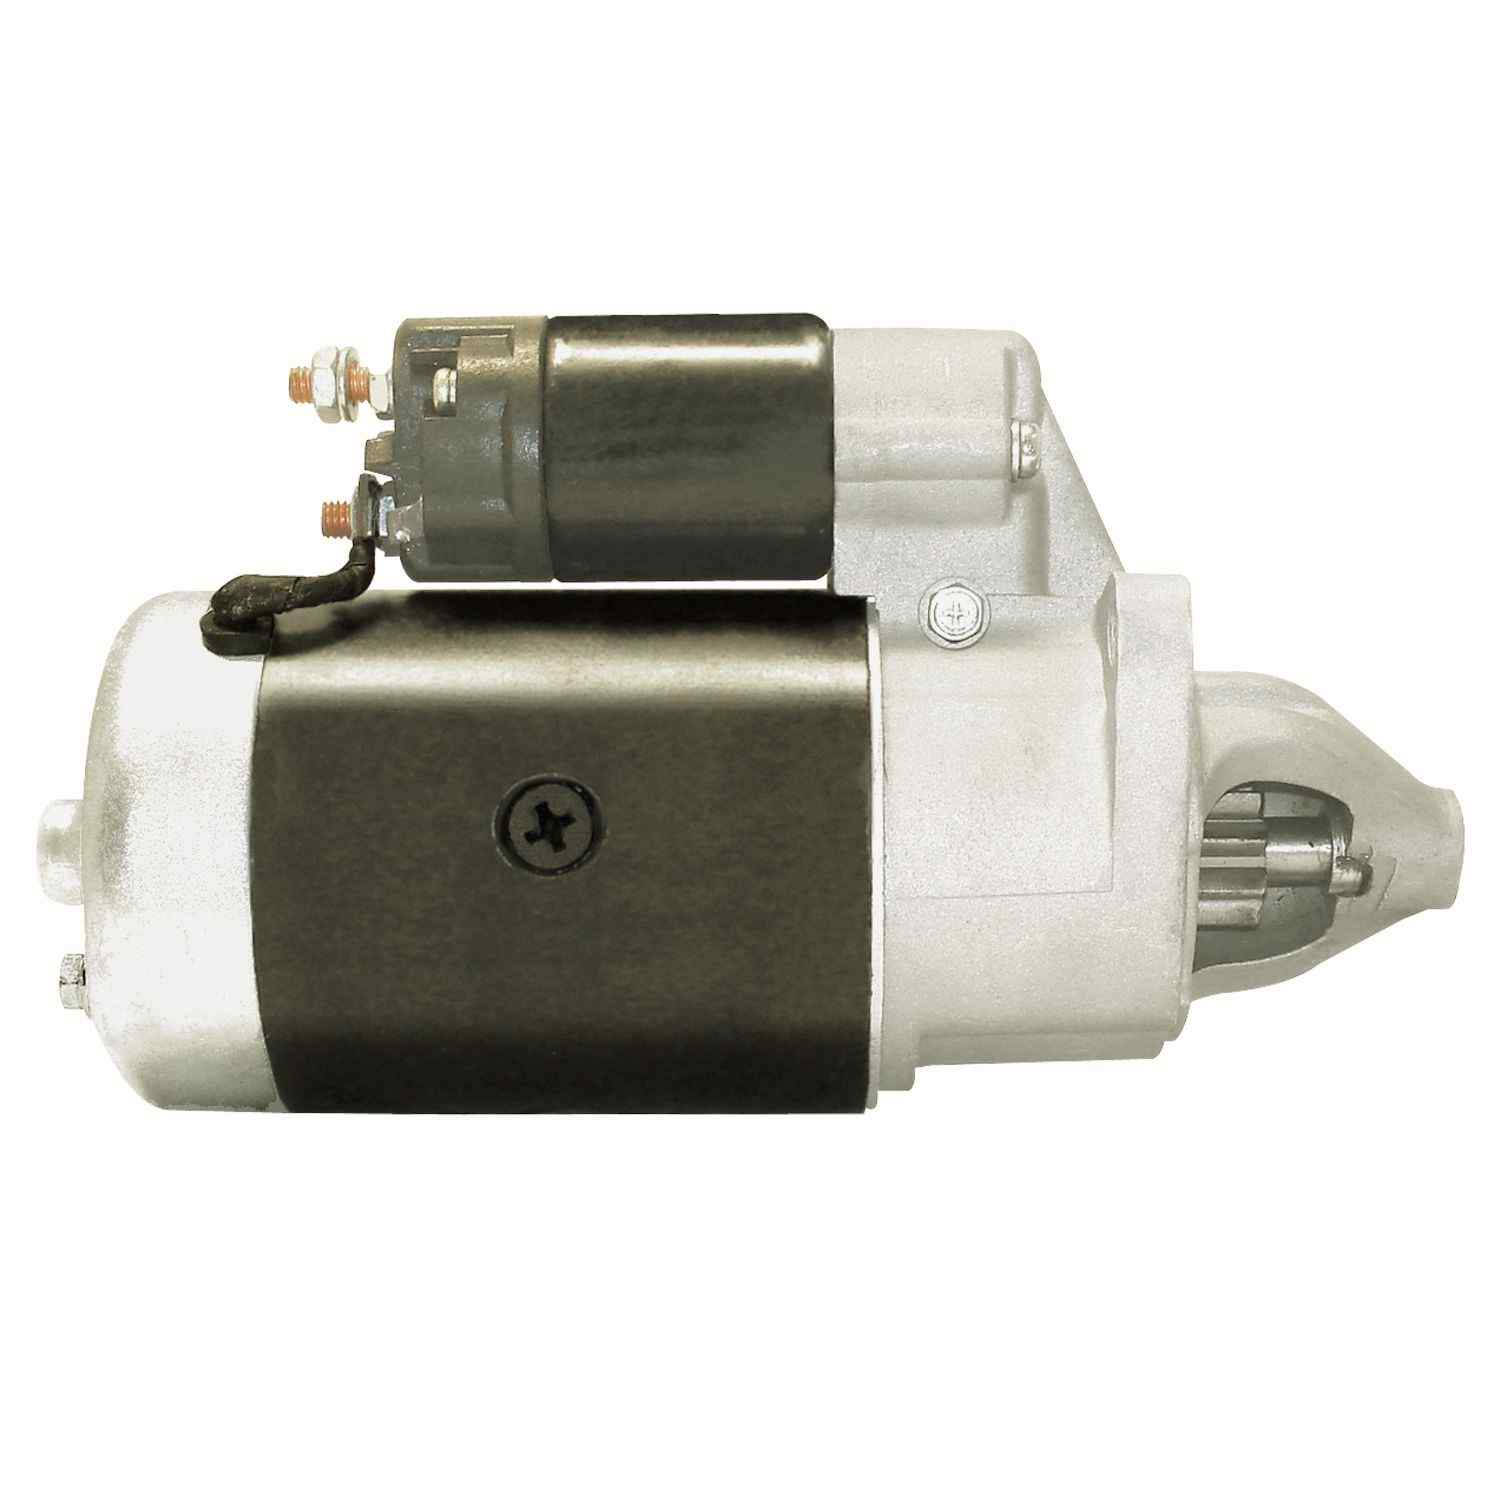 ACDELCO GOLD/PROFESSIONAL - Reman Starter Motor - DCC 336-1260